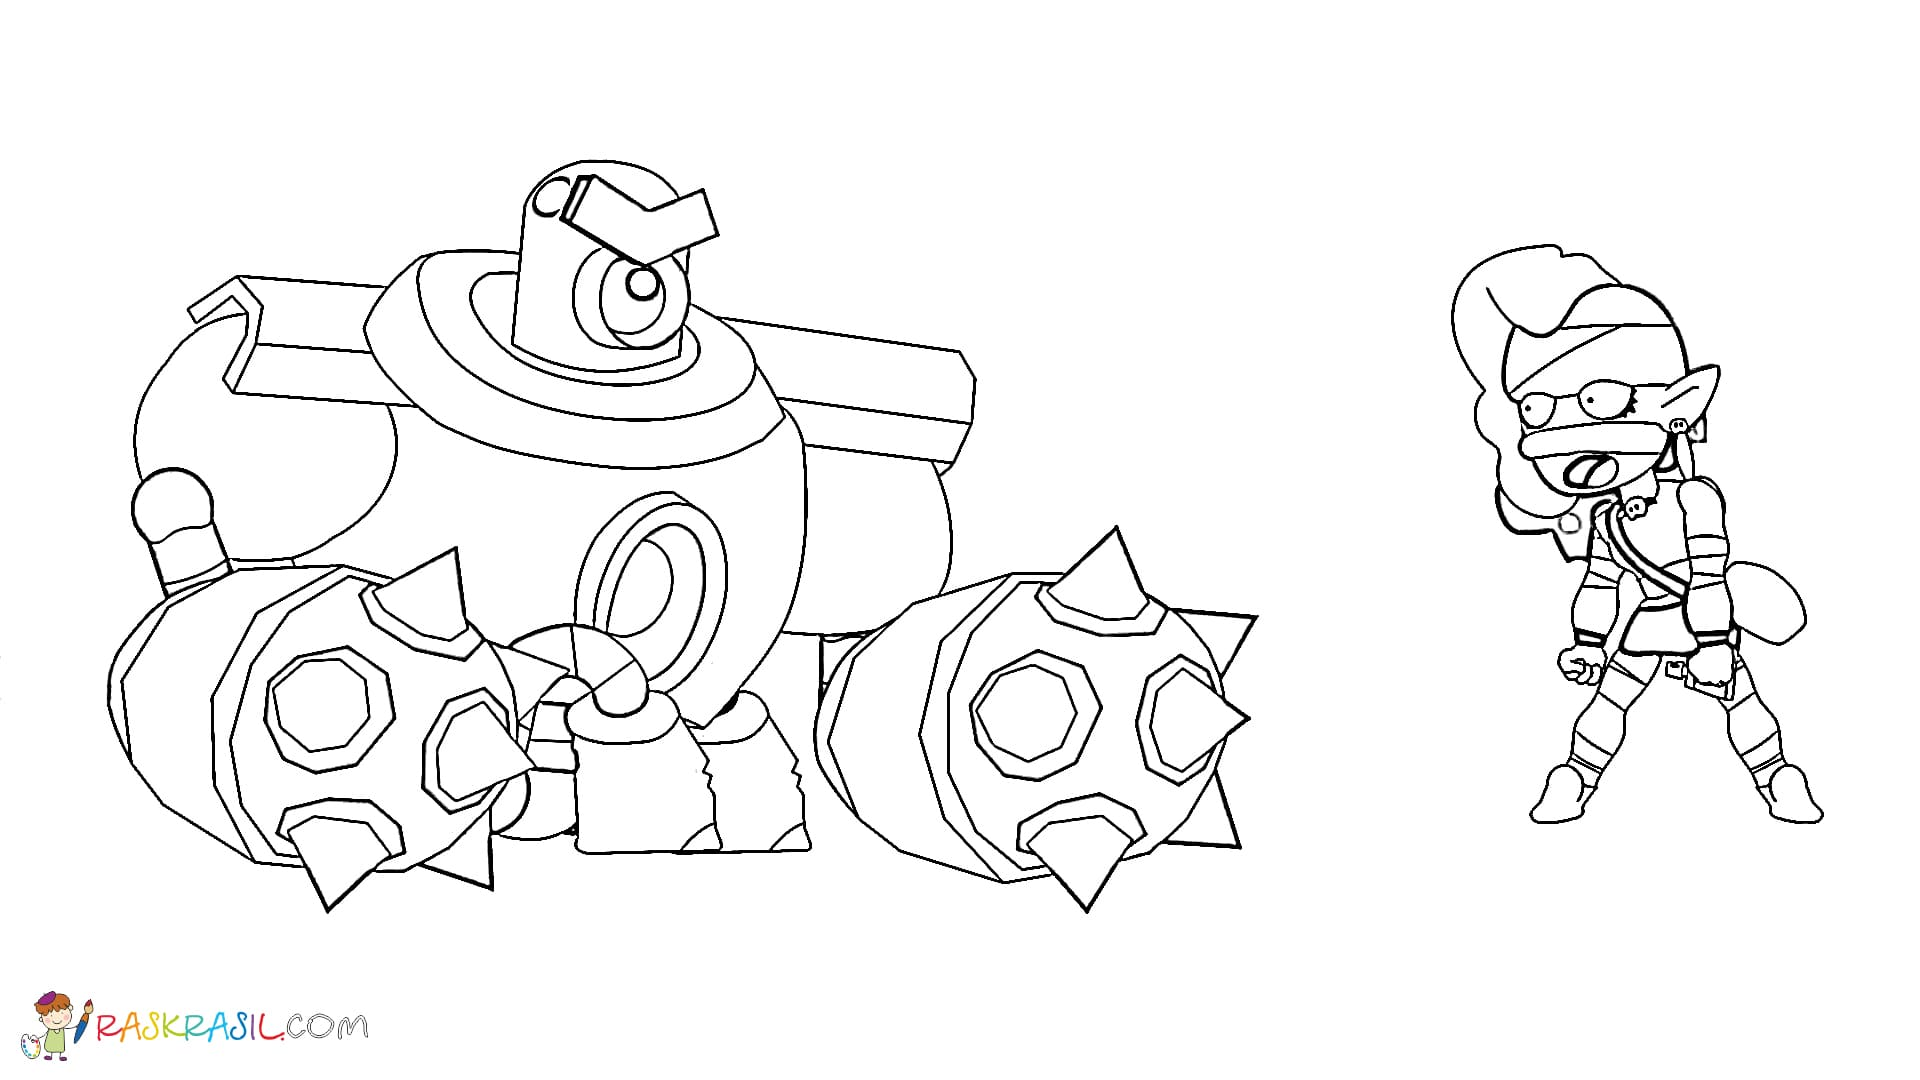 Coloring Pages Emz. Print out your Brawl Stars character online